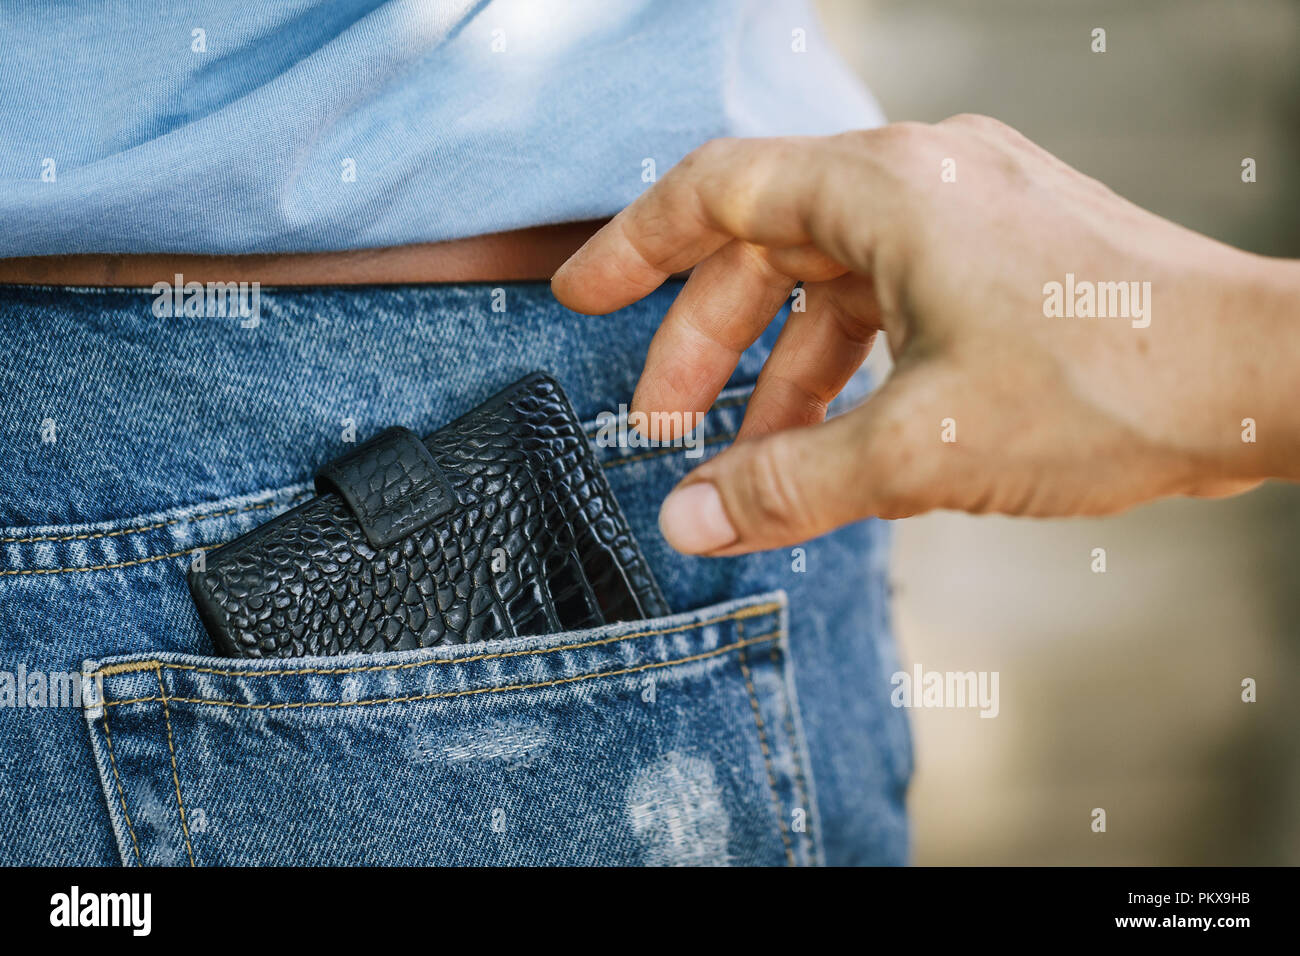 Theft of a purse from a jeans pocket in the daytime on the street, close-up - Stock Image